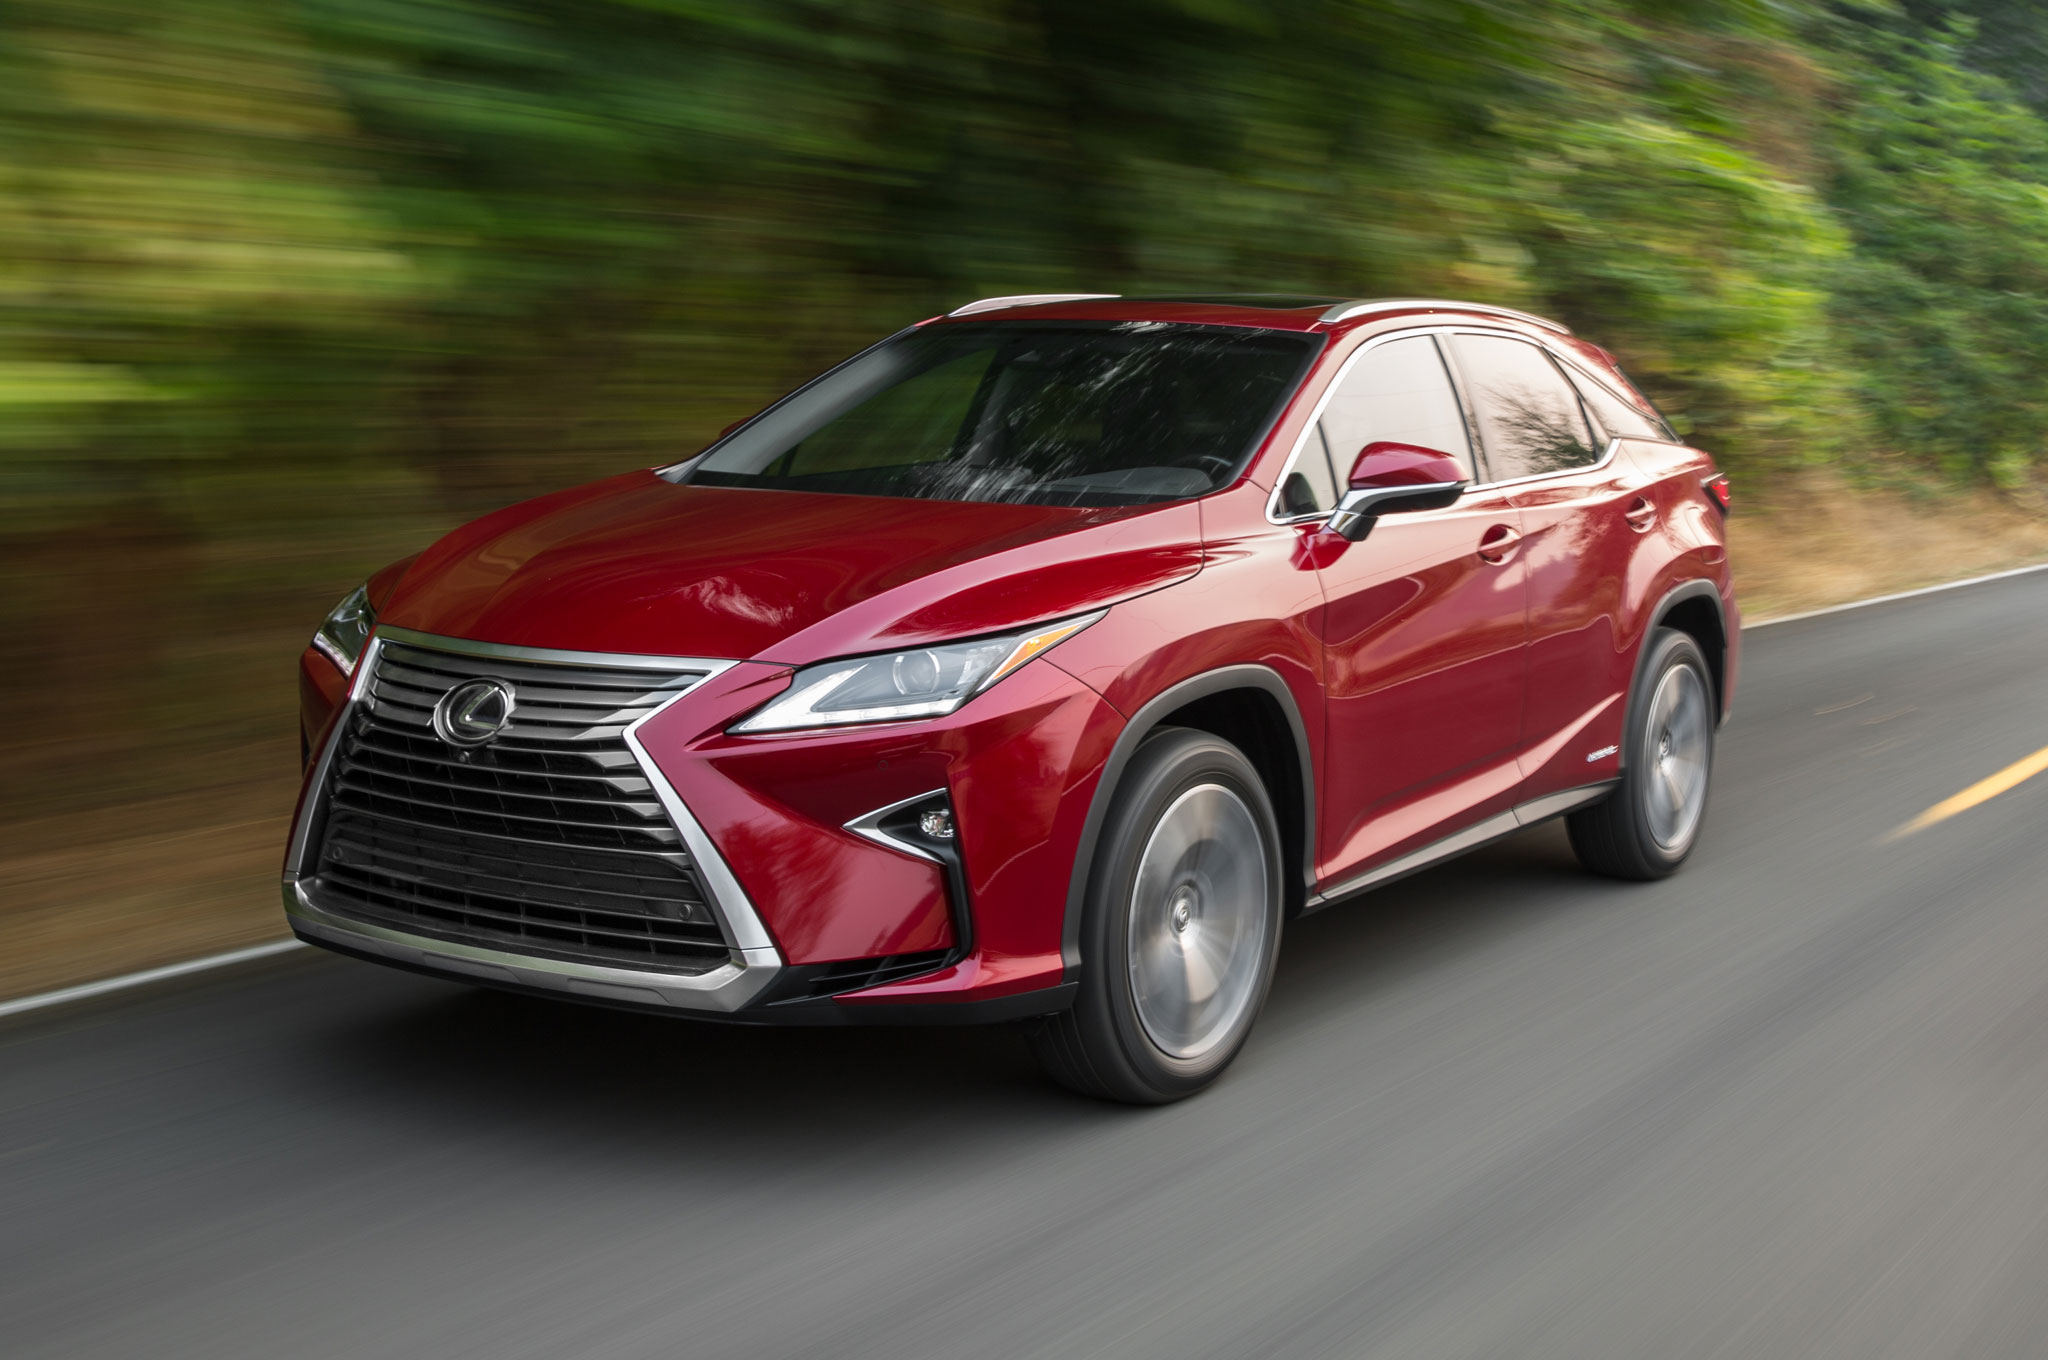 2016 Lexus RX 450h Hybrid Front Three Quarter In Motion 03